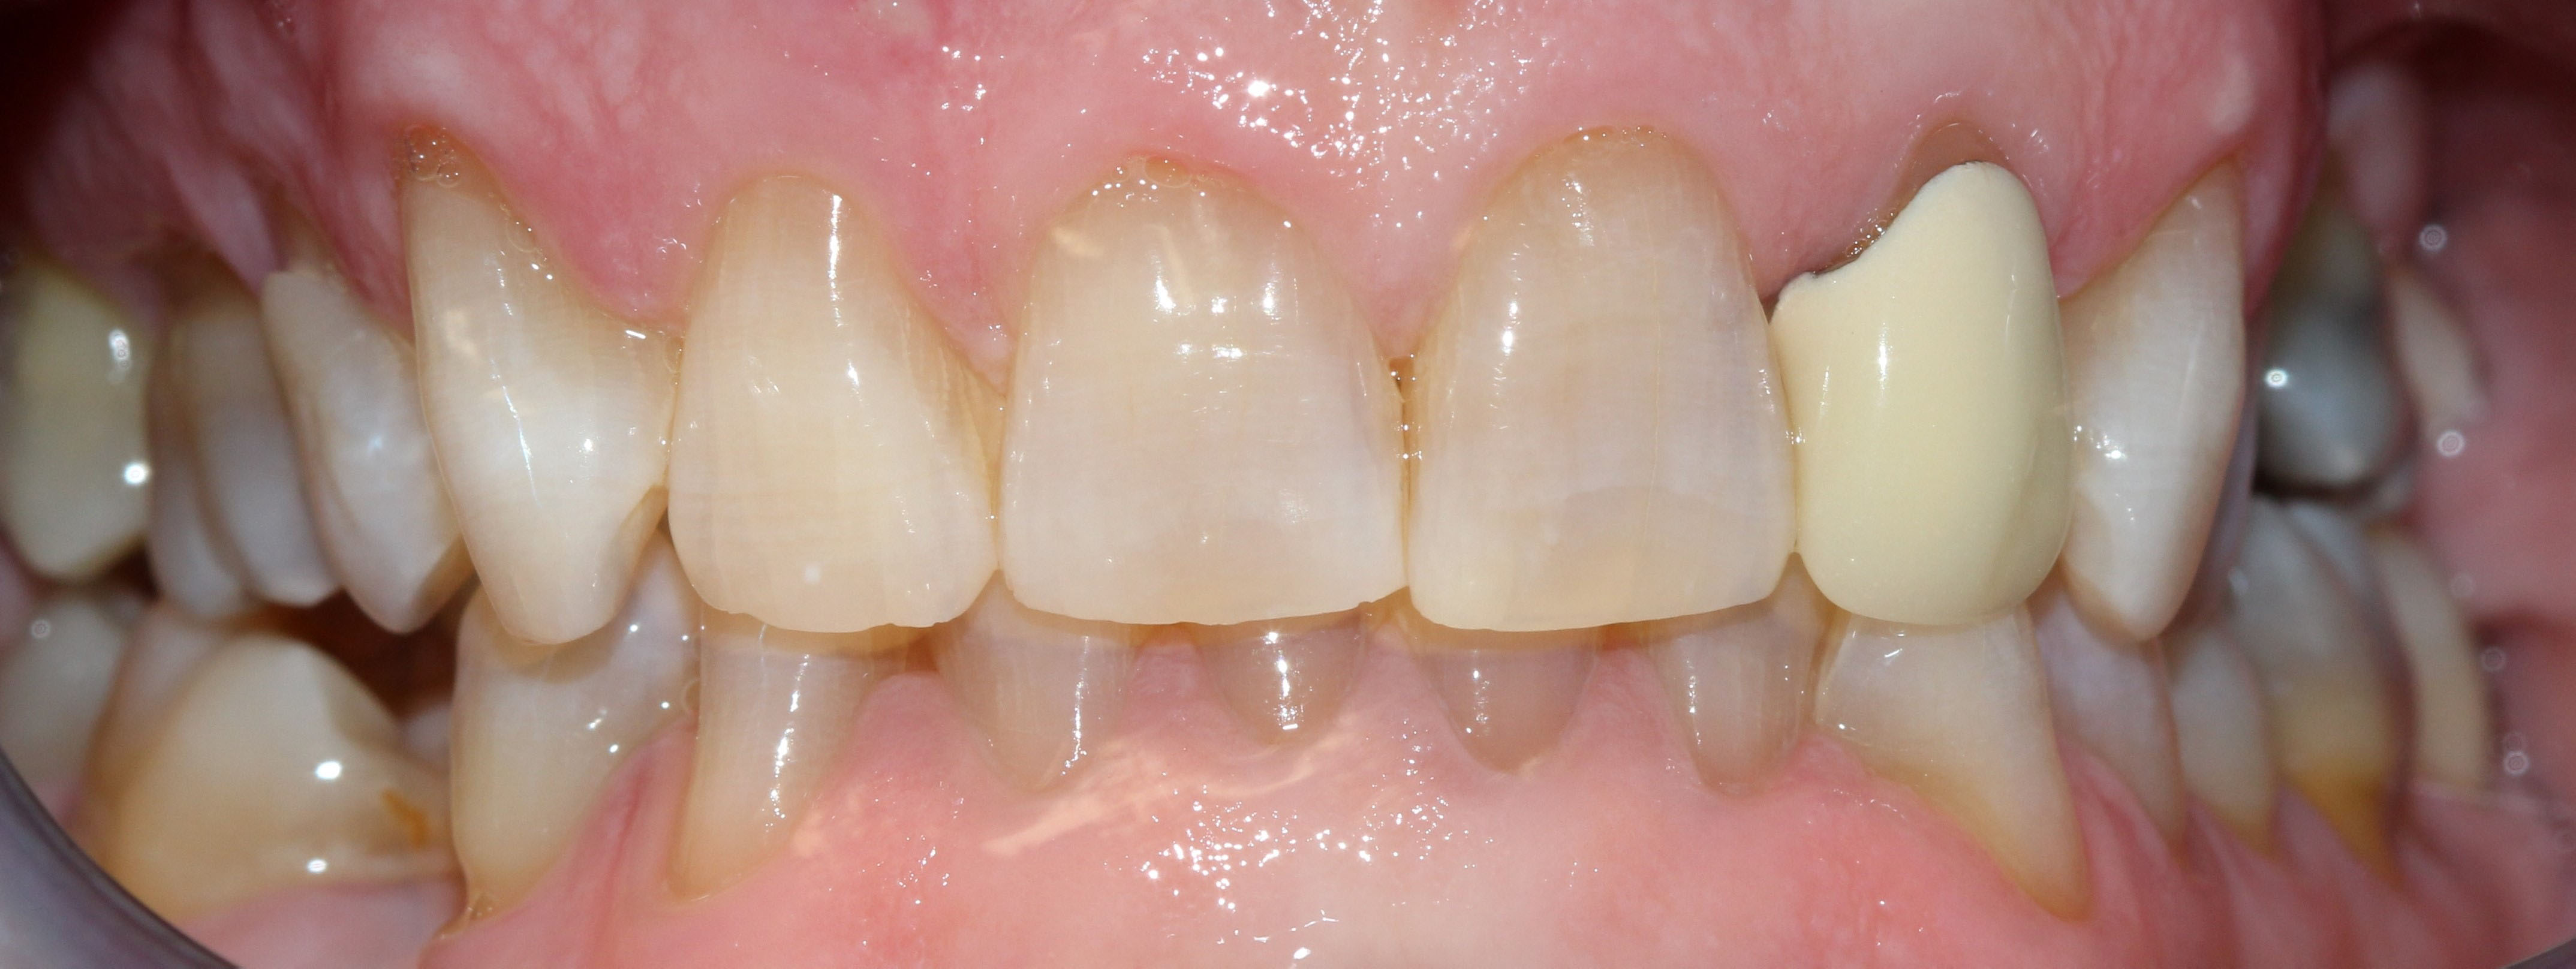 After picture, showing whiter teeth.